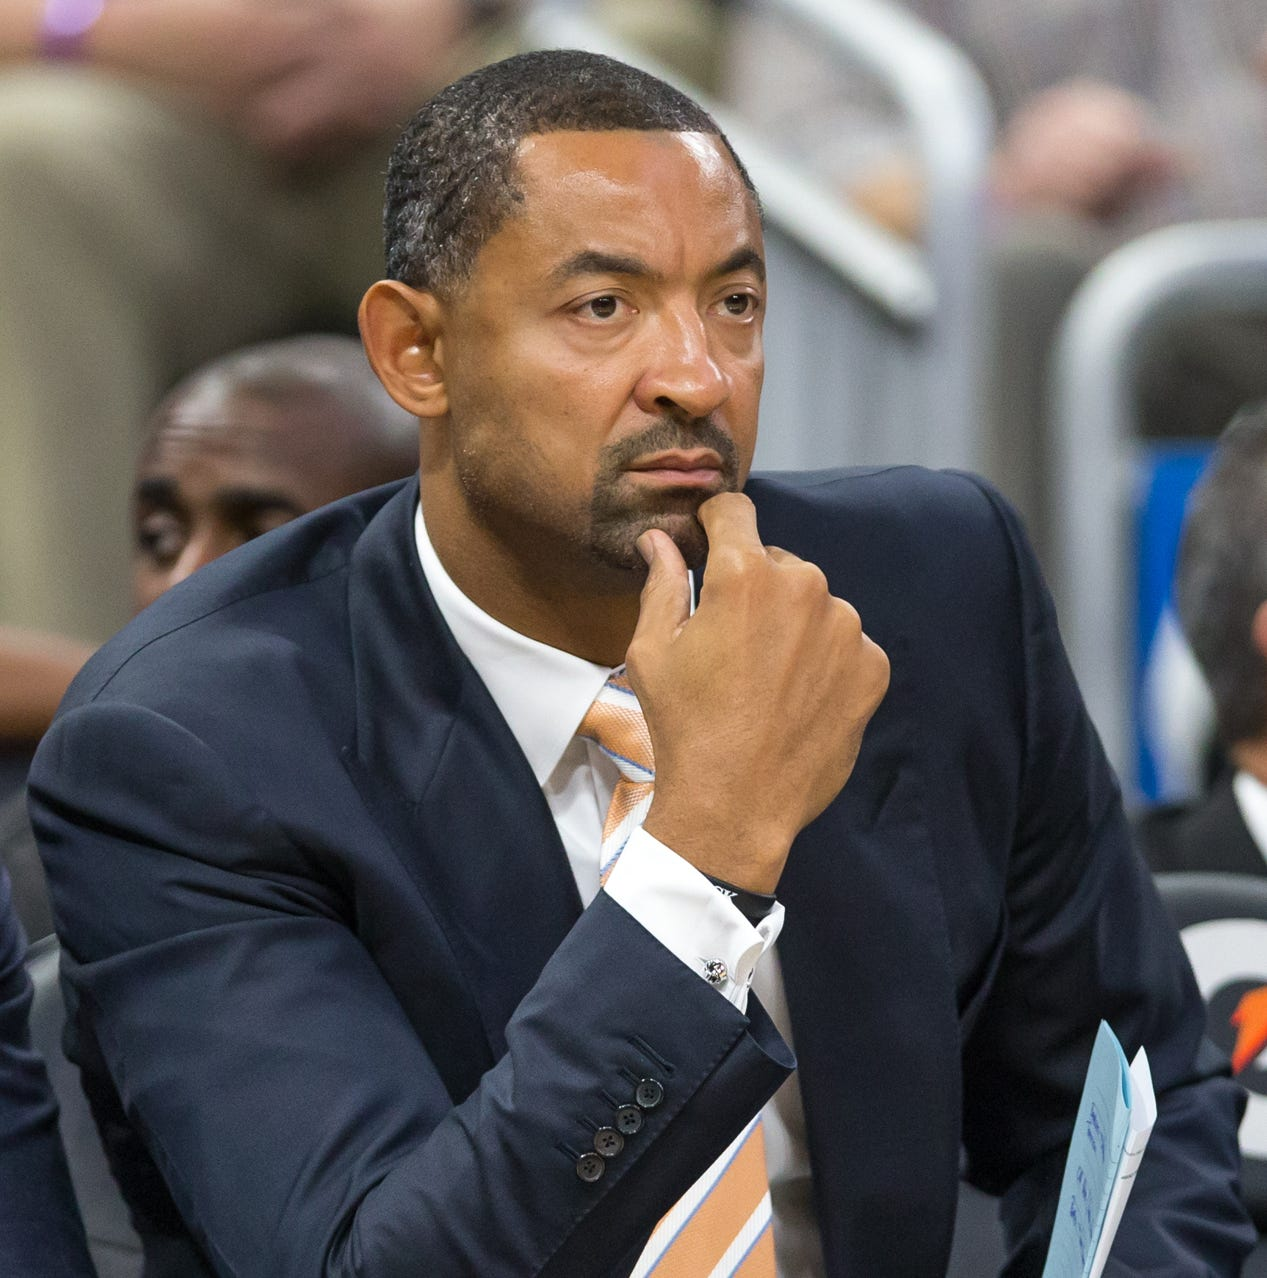 Juwan Howard has chance to build a sense of place in way Beilein didn't